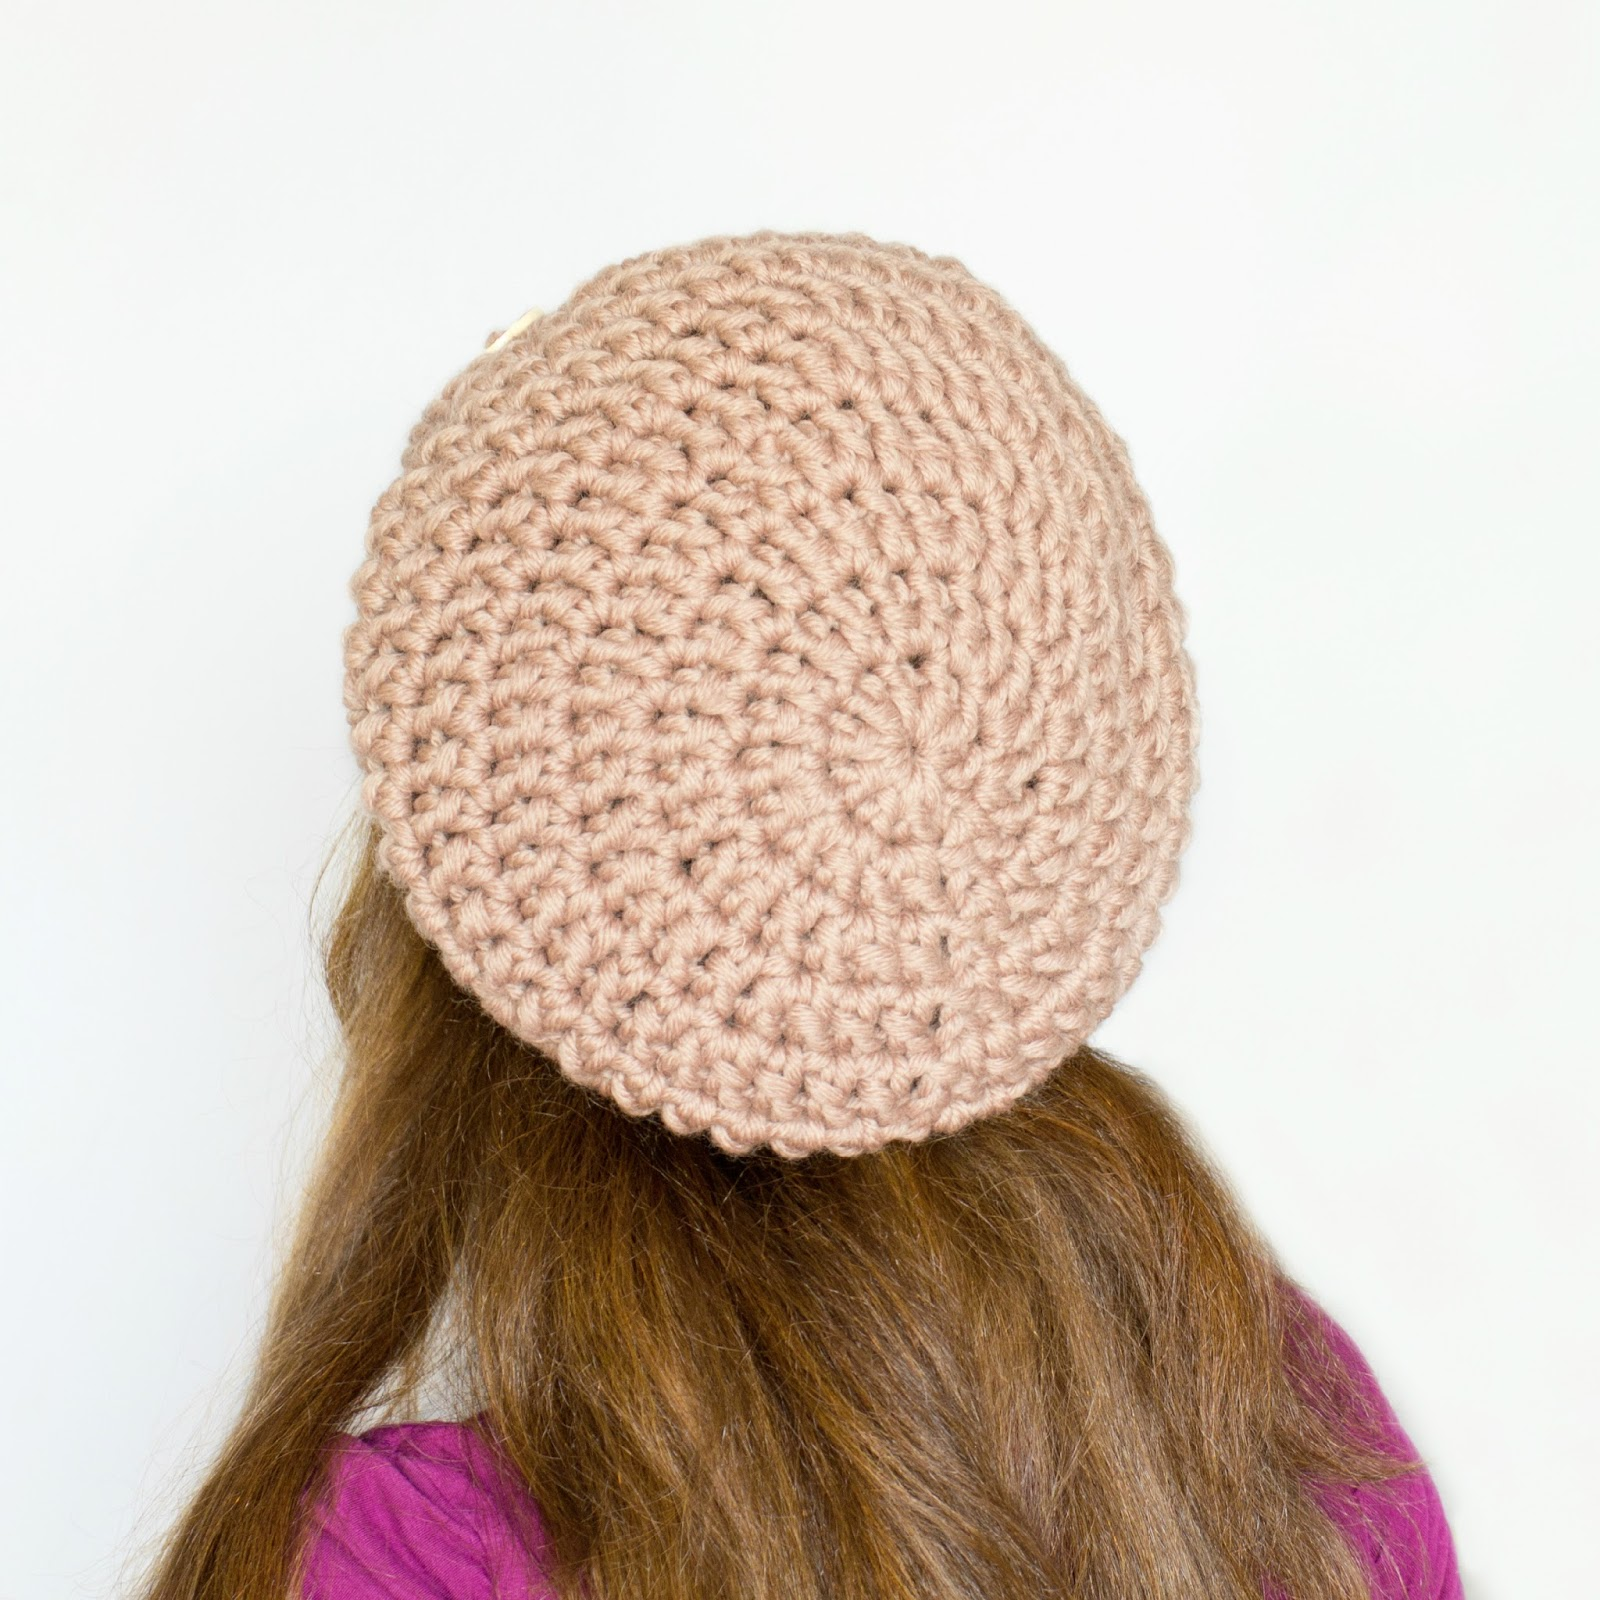 21 Slouchy Beanie Crochet Patterns For Beginners